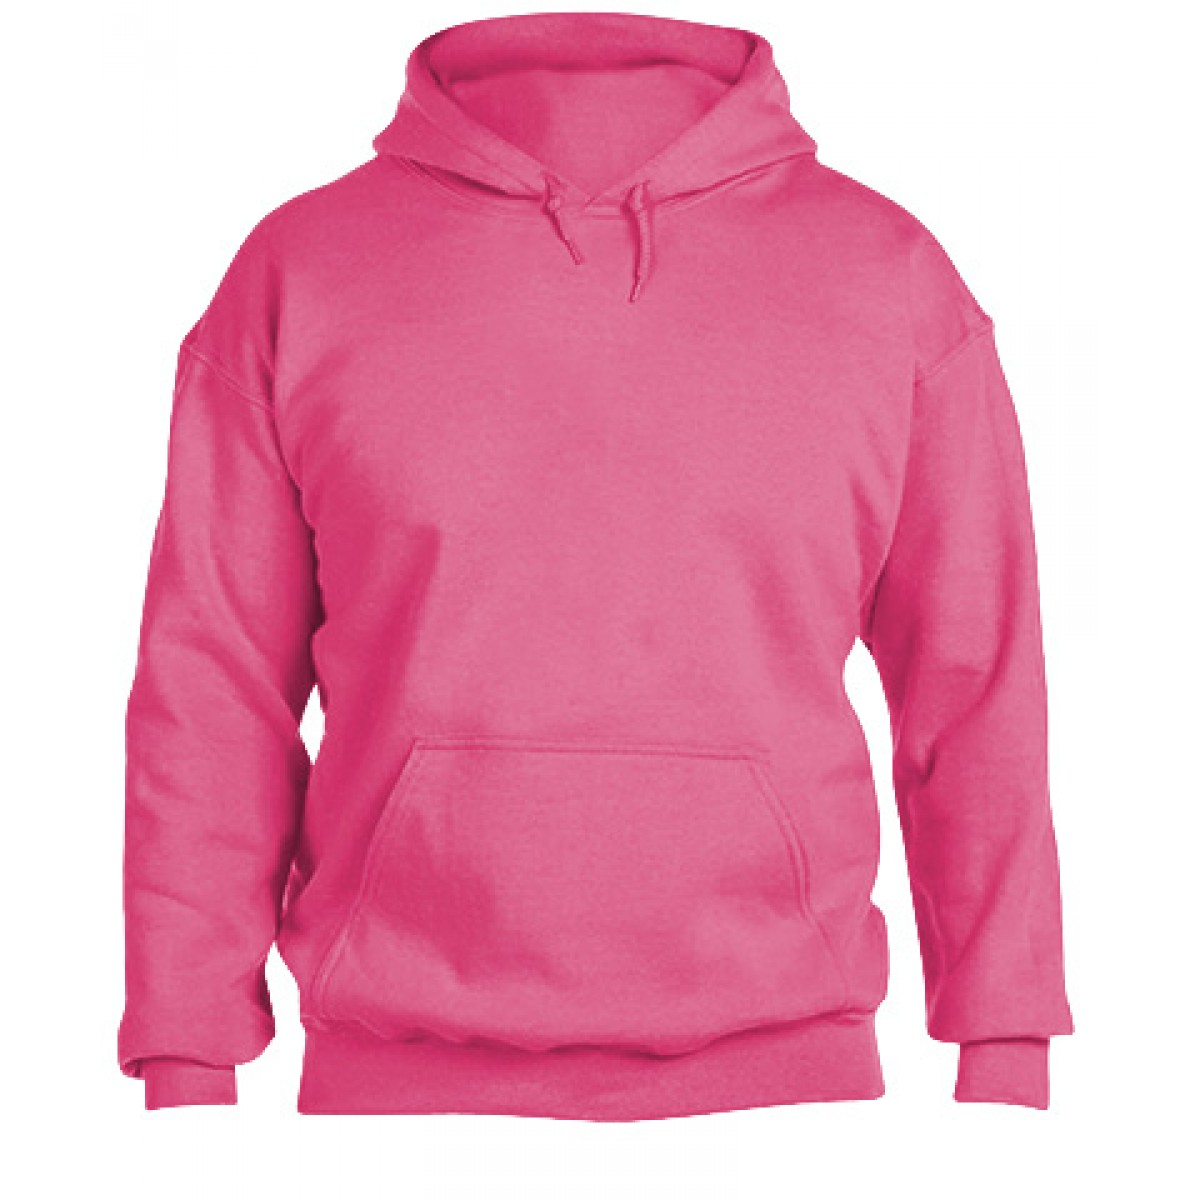 Hooded Sweatshirt 50/50 Heavy Blend -Safety Pink-3XL